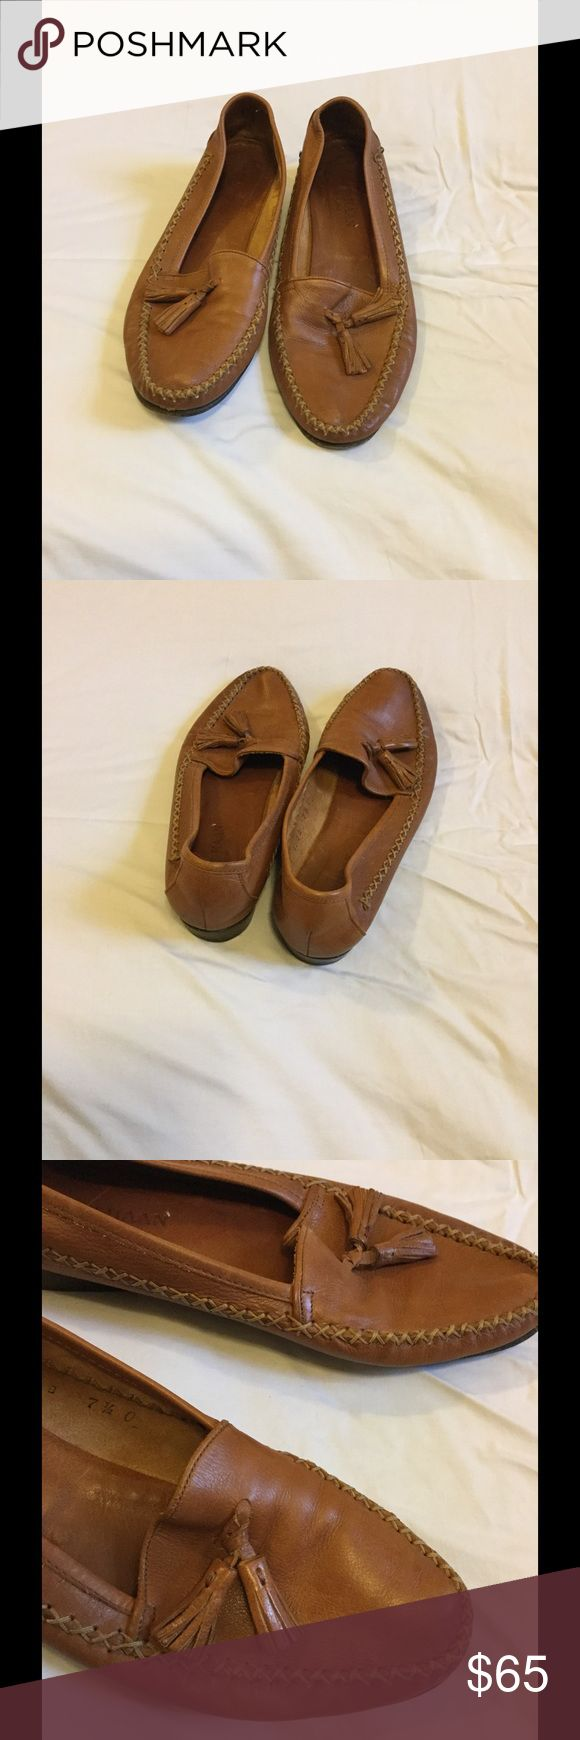 Cole Haan Loafers. Brown cole Haan Loafers. Good condition. Made very narrow. Worn. Super cute. Great for work. Offers welcome. Cole Haan Shoes Flats & Loafers